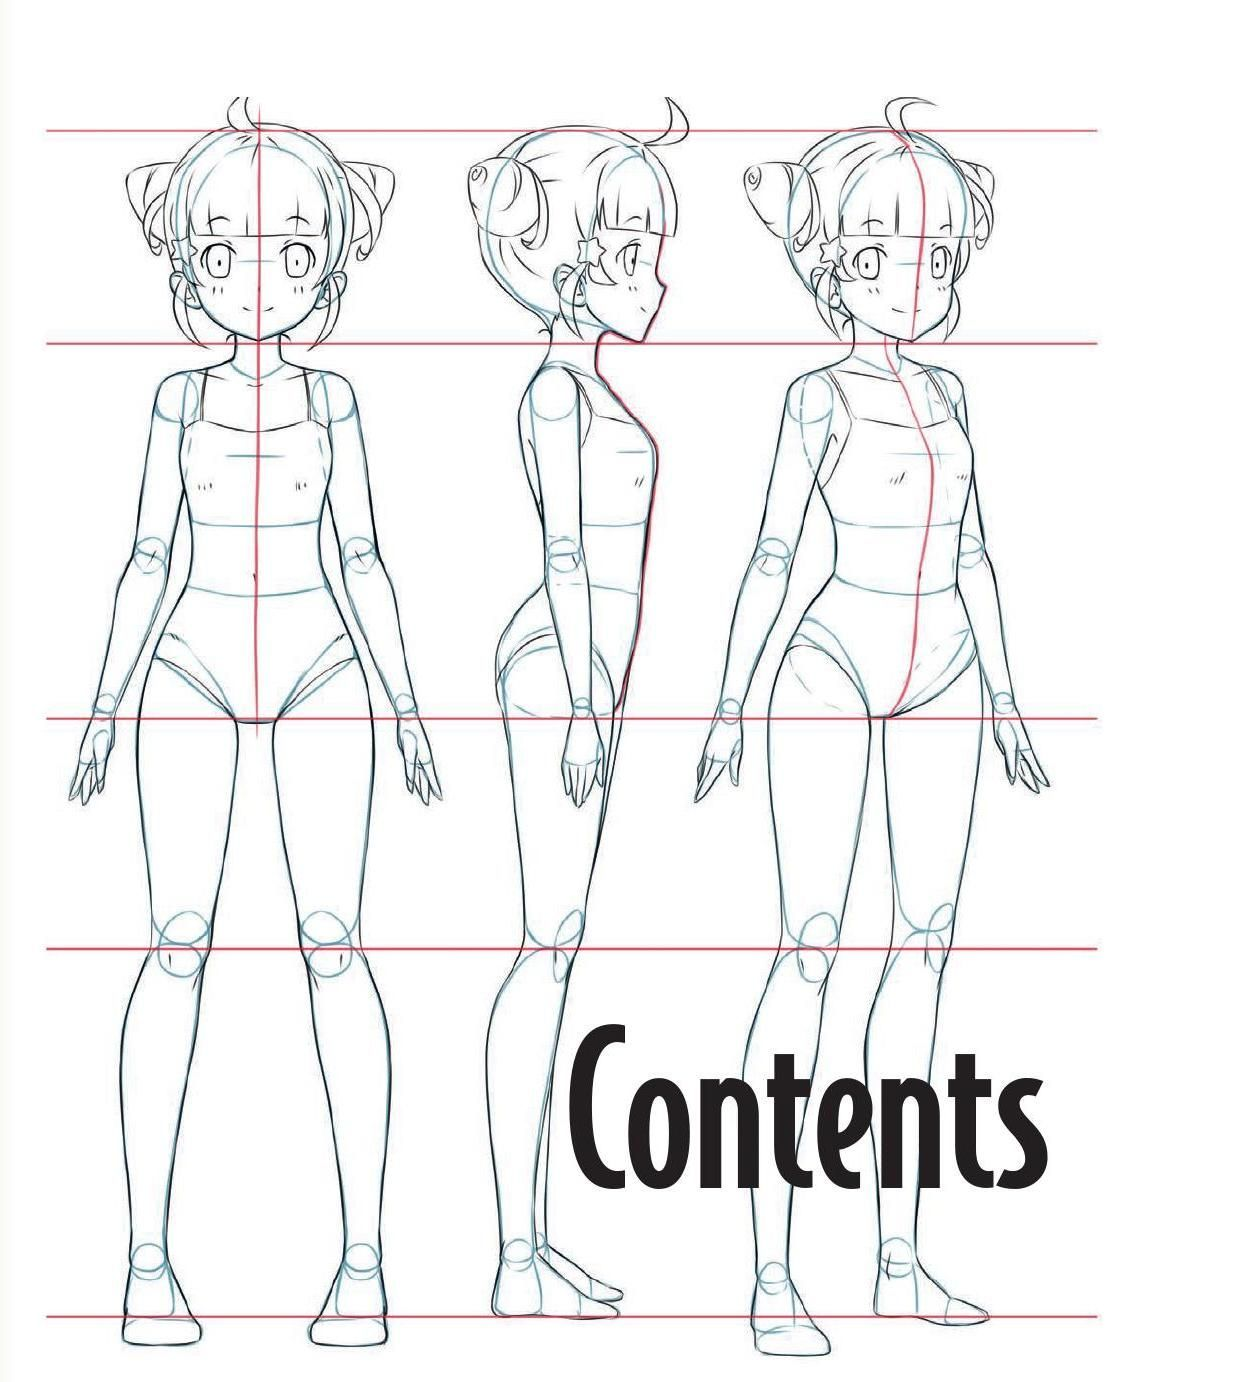 Clippedonissuu From The Master Guide To Drawing Anime How To Draw Original Characters From Simple Tem Anime Drawing Books Drawing Anime Bodies Anime Drawings